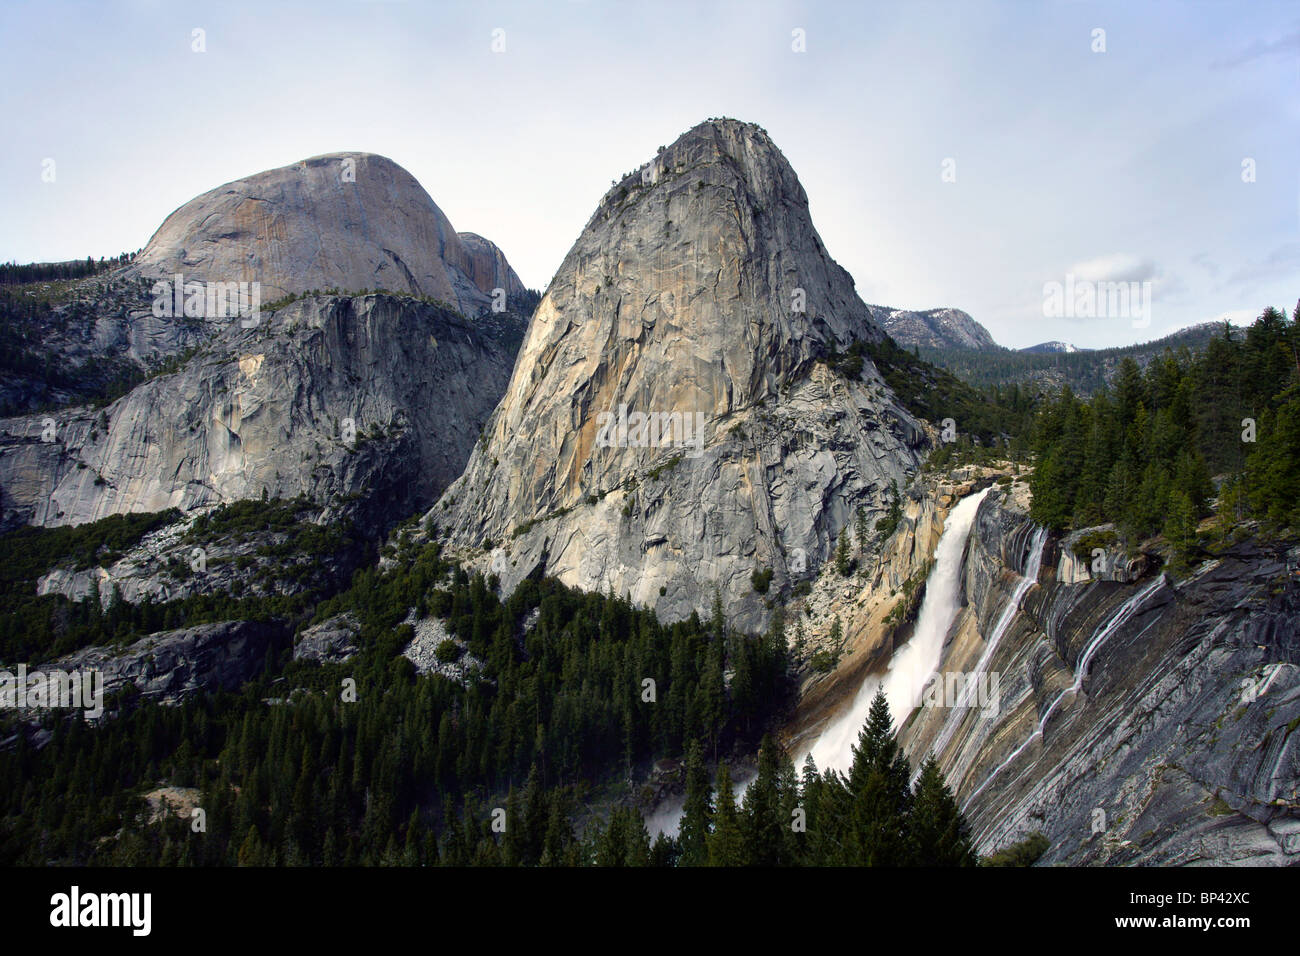 The Liberty cap with the Half dome in the background and Nevada falls in the foreground at Yosemite national park - Stock Image